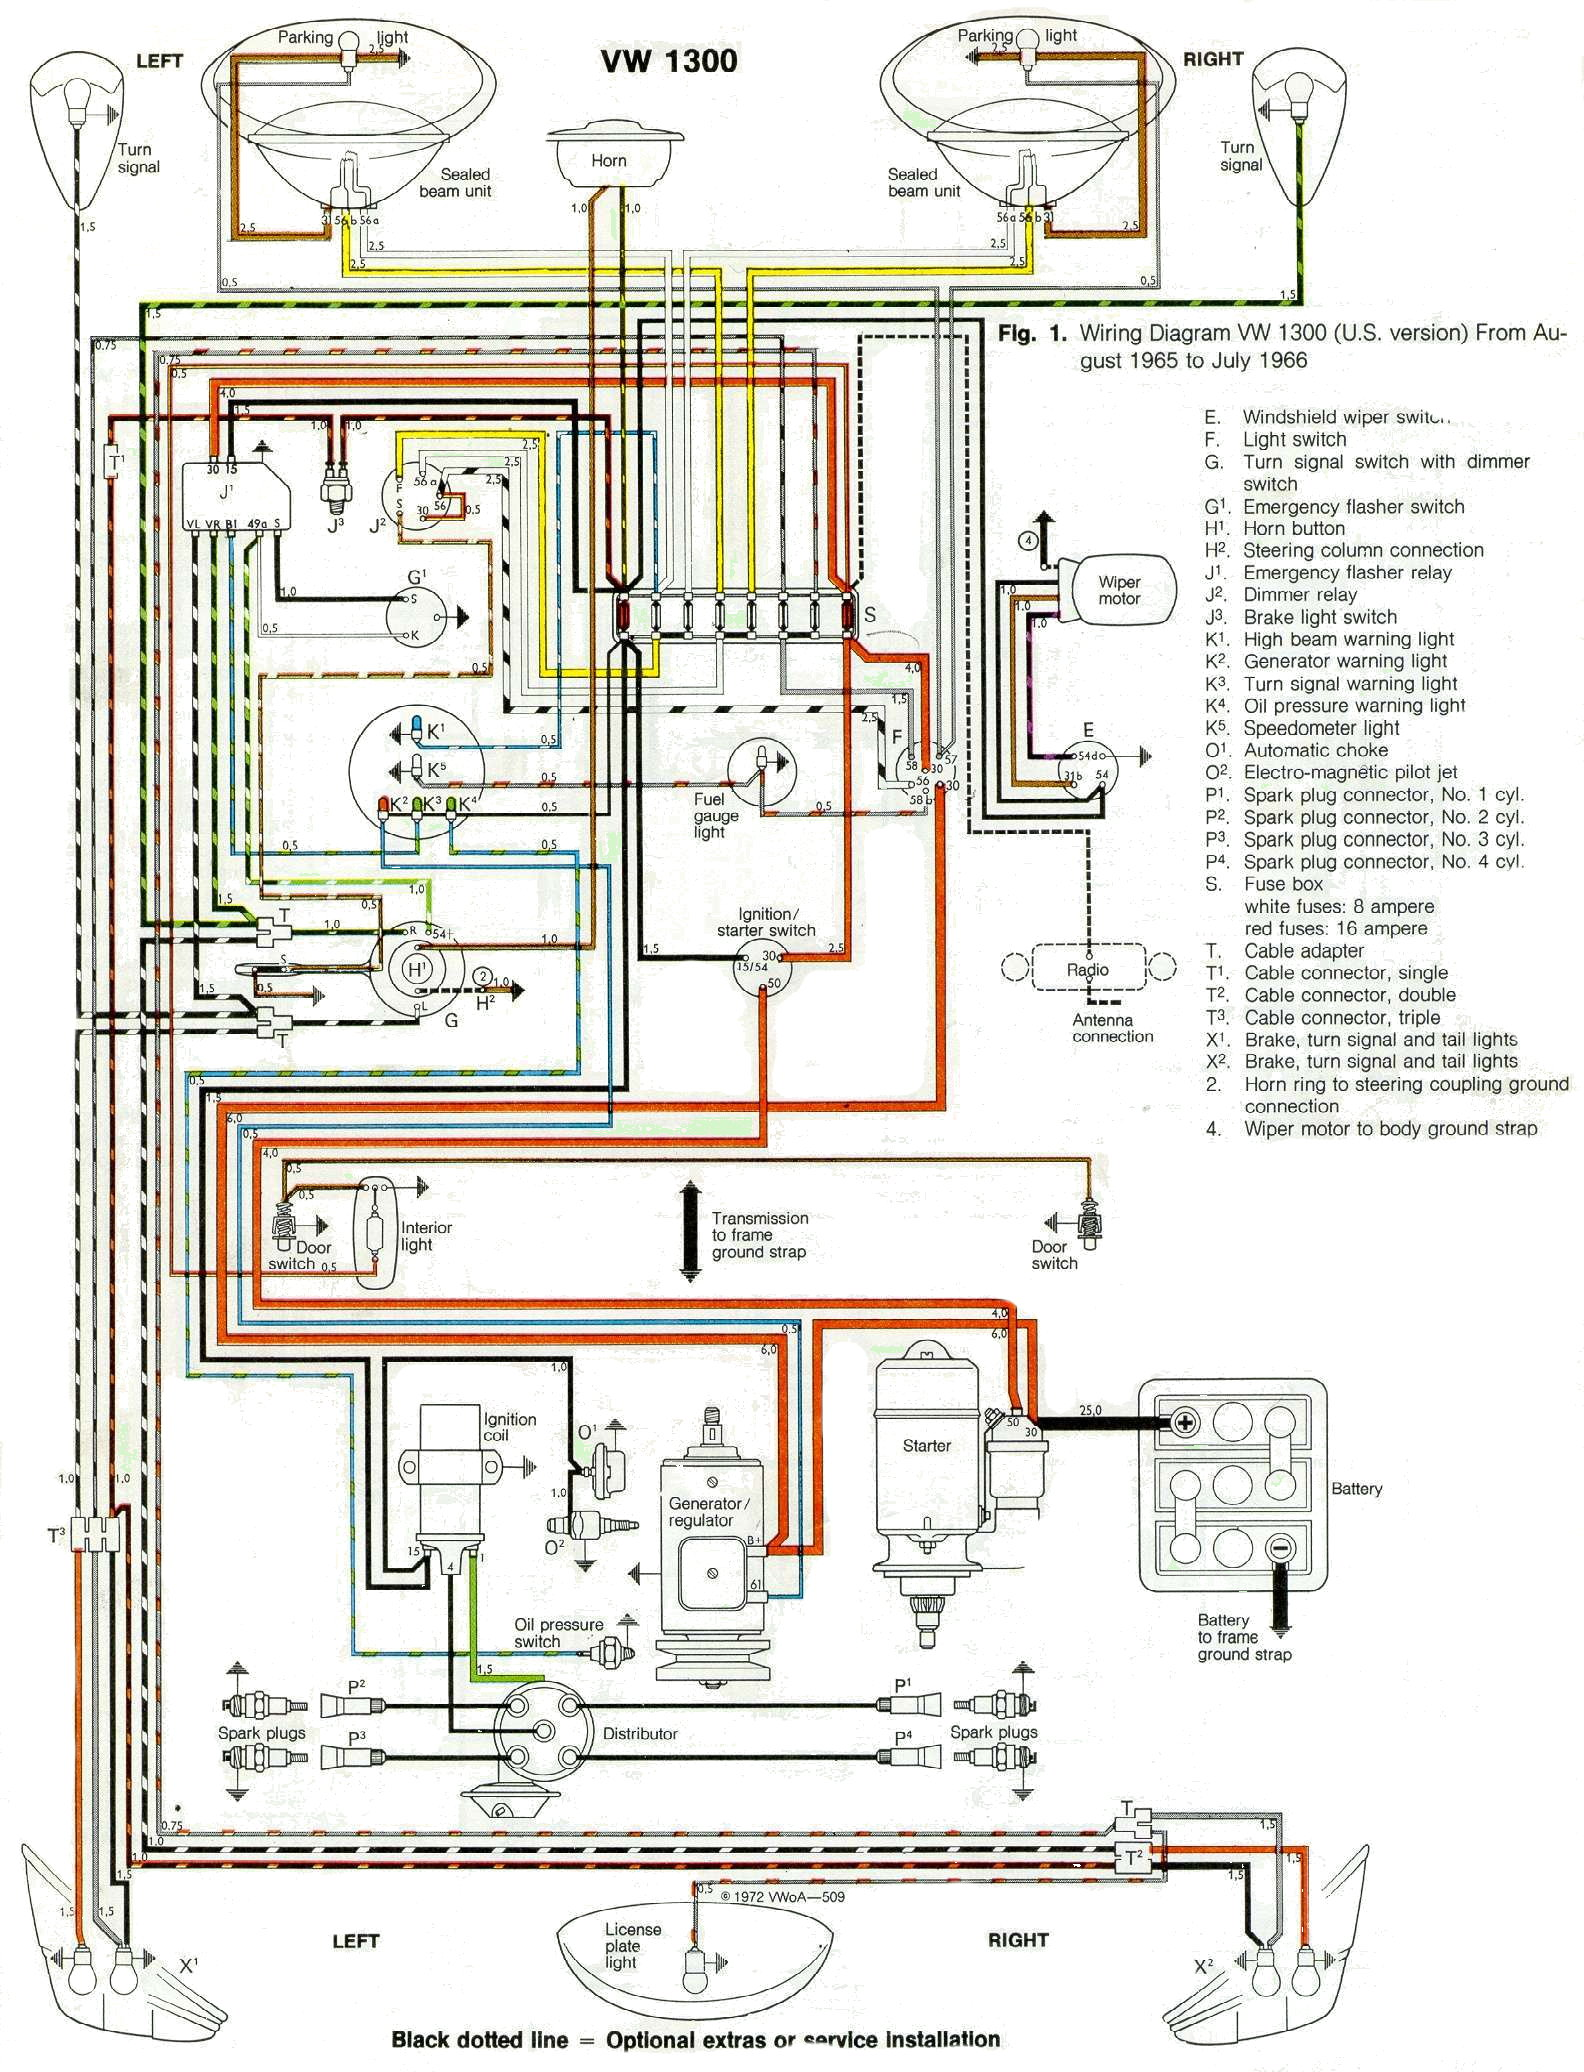 1966 Wiring 67 vw bus wiring harness 71 vw wiring harness \u2022 wiring diagrams Wiring Harness Diagram at gsmx.co